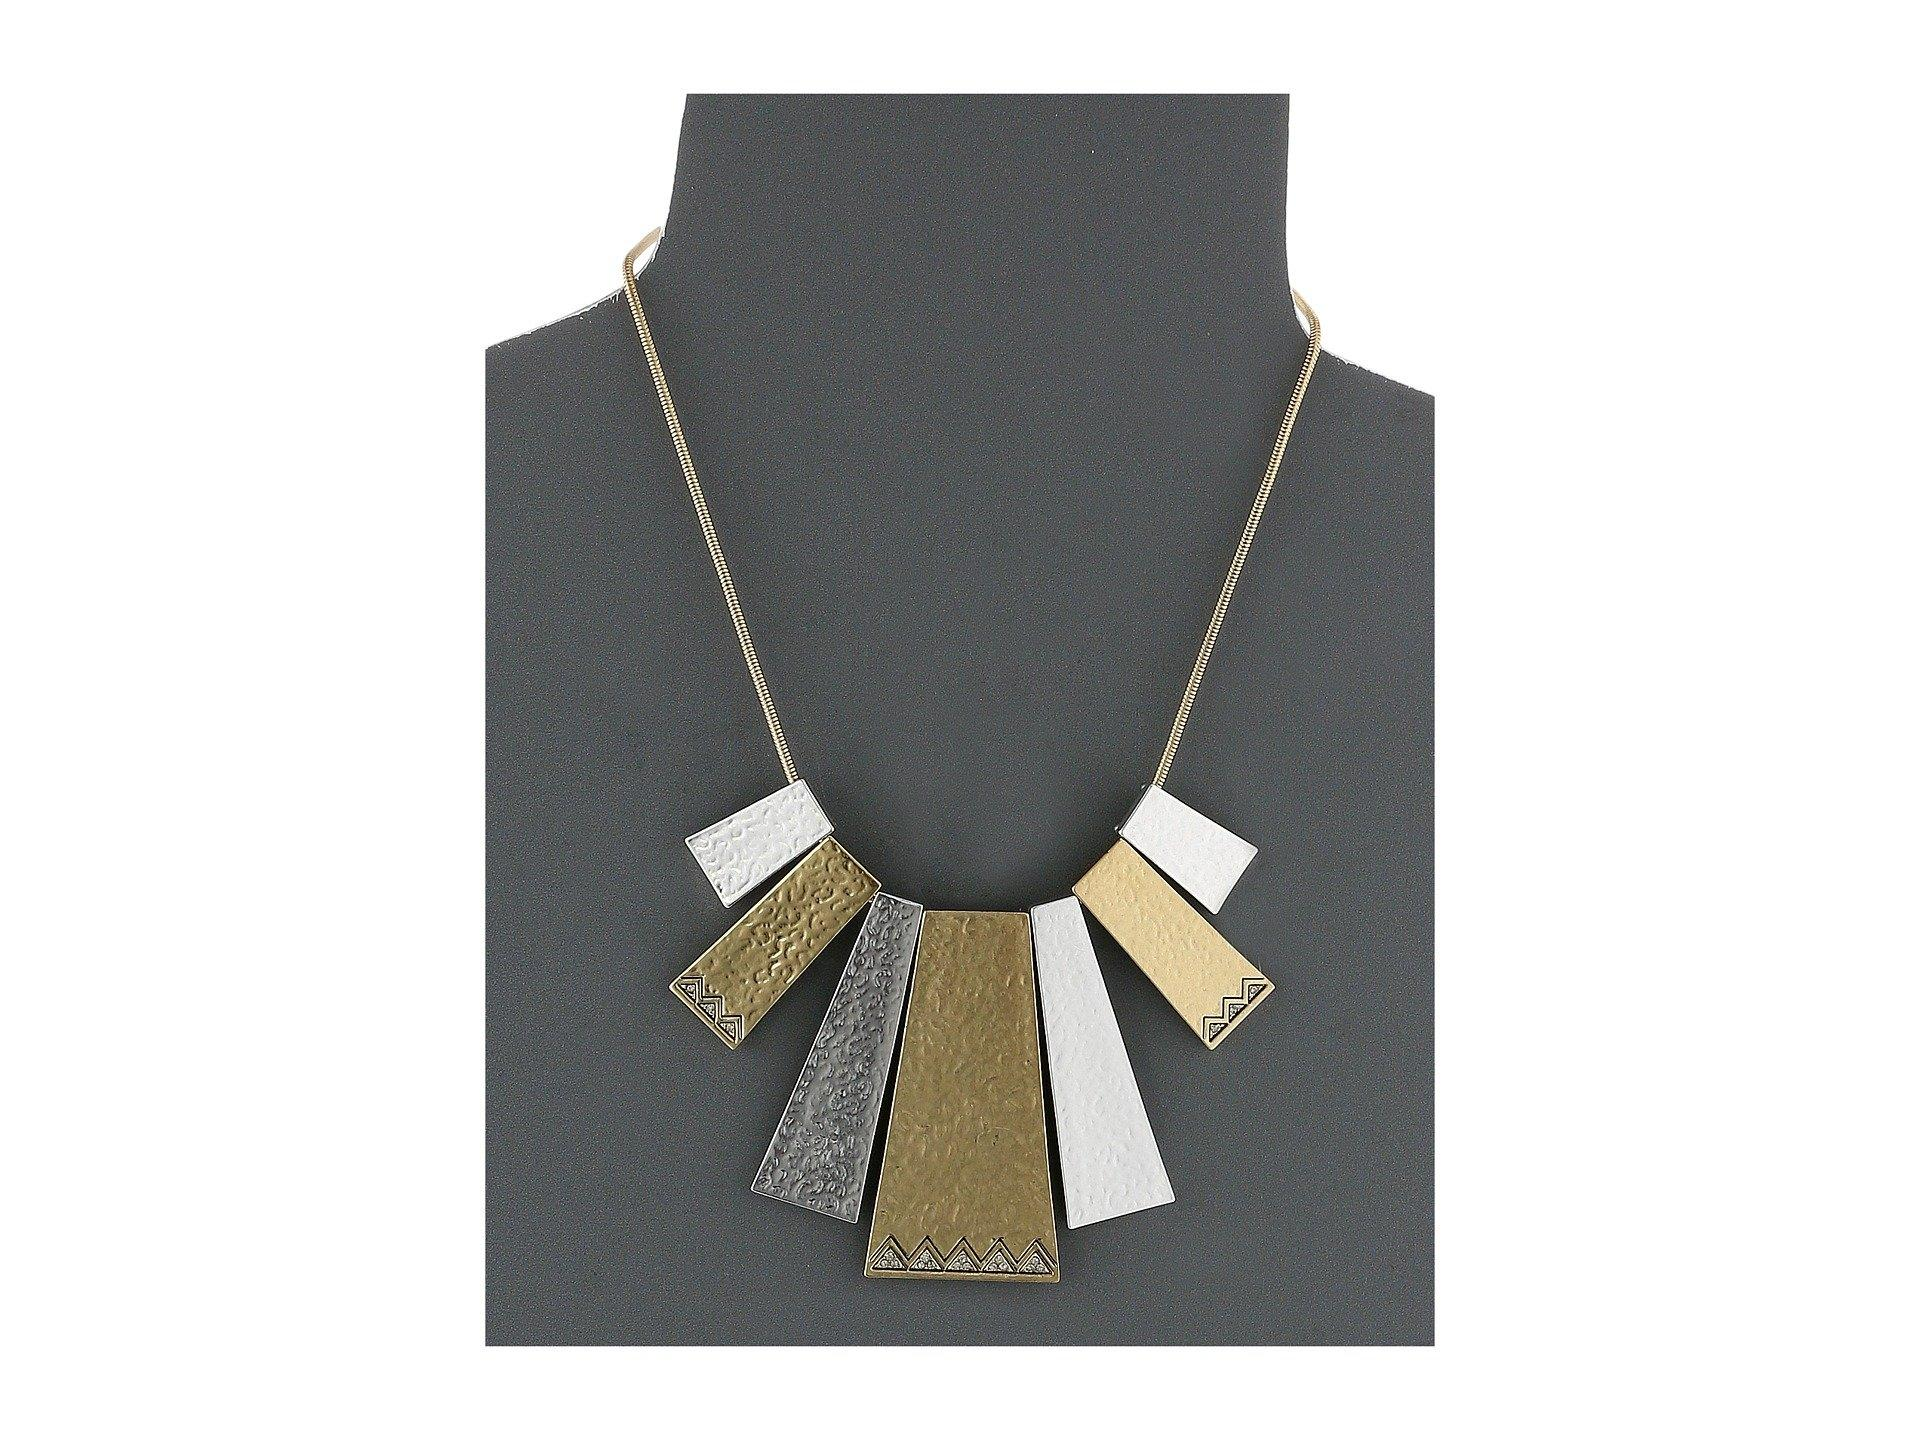 House Of Harlow Scutum Statement Necklace in Metallic Gold 4DE4rDw2